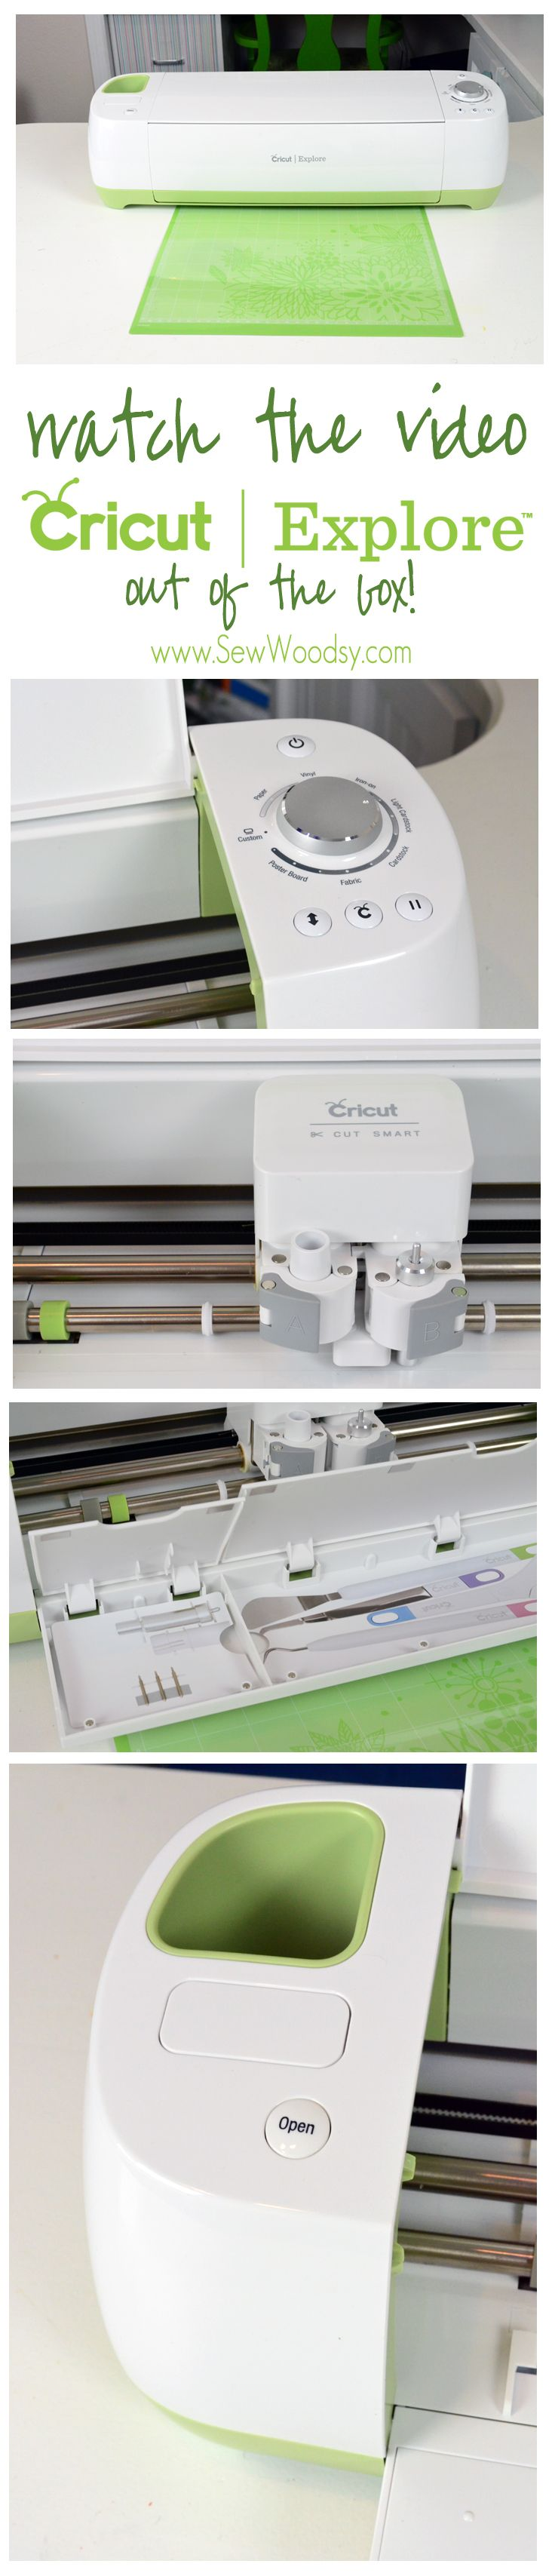 I would LOVE a cricut explore for Christmas!!! Watch the Video about the @Cricut®®® Explore Out of the Box from SewWoodsy.com #Cricut #Video #DIY